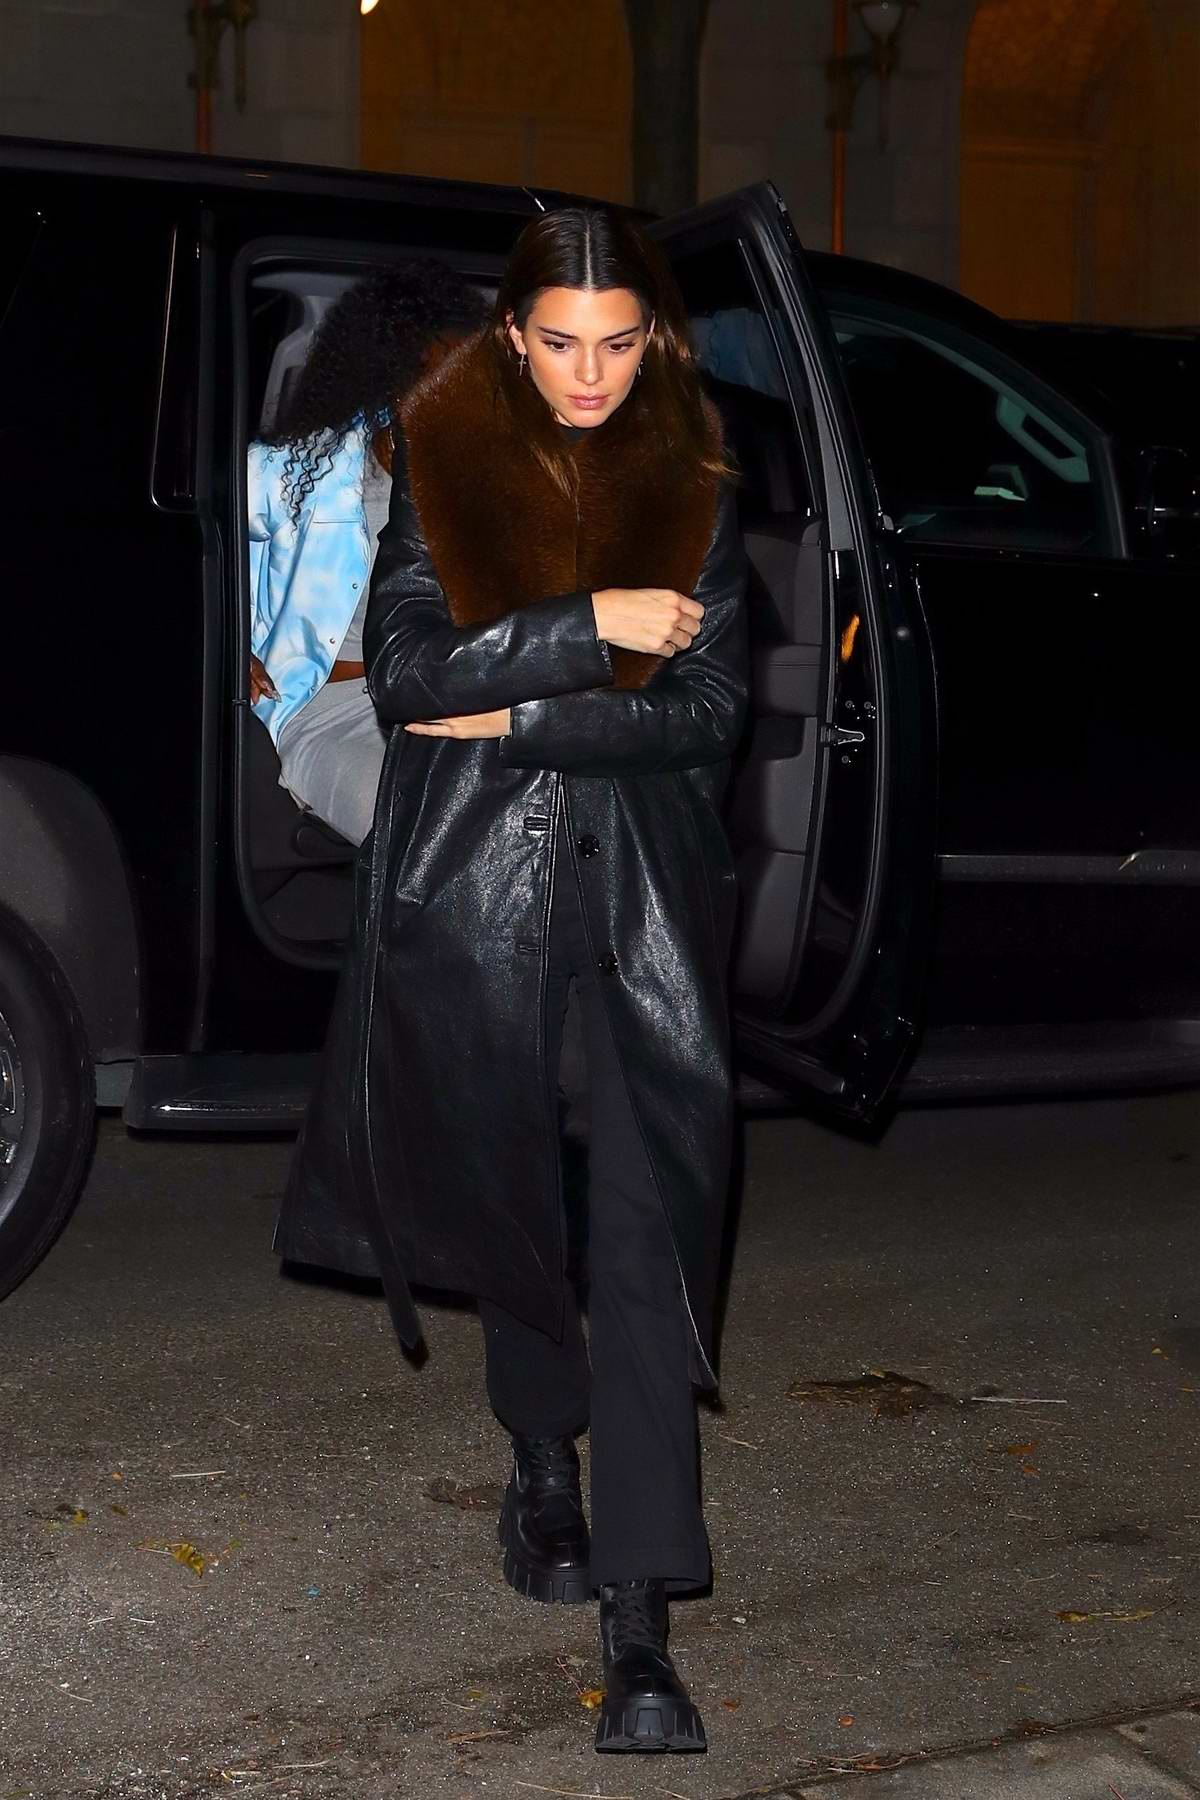 Kendall Jenner steps out in black leather jacket as she arrive at a private residence in Upper East Side, New York City